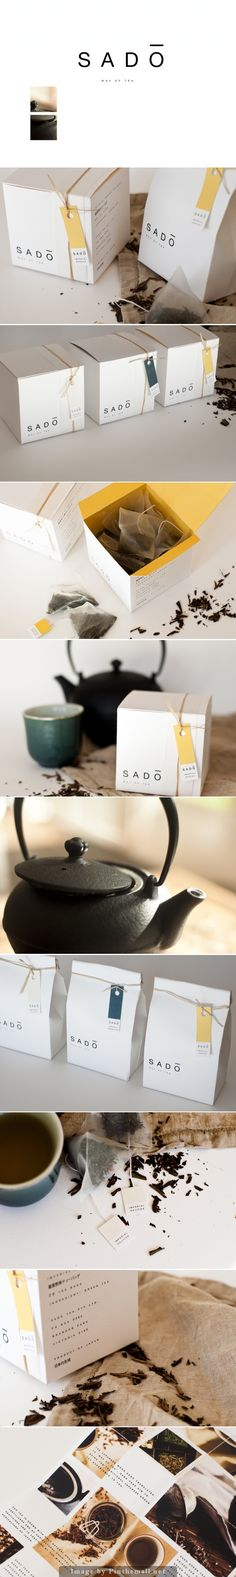 Got time time for some Sado Tea #packaging and design inspiration by Emma Goddard curated by Packaging Diva PD created via http://www.theloop.com.au/emma.goddard91/portfolio/sado-tea/180826